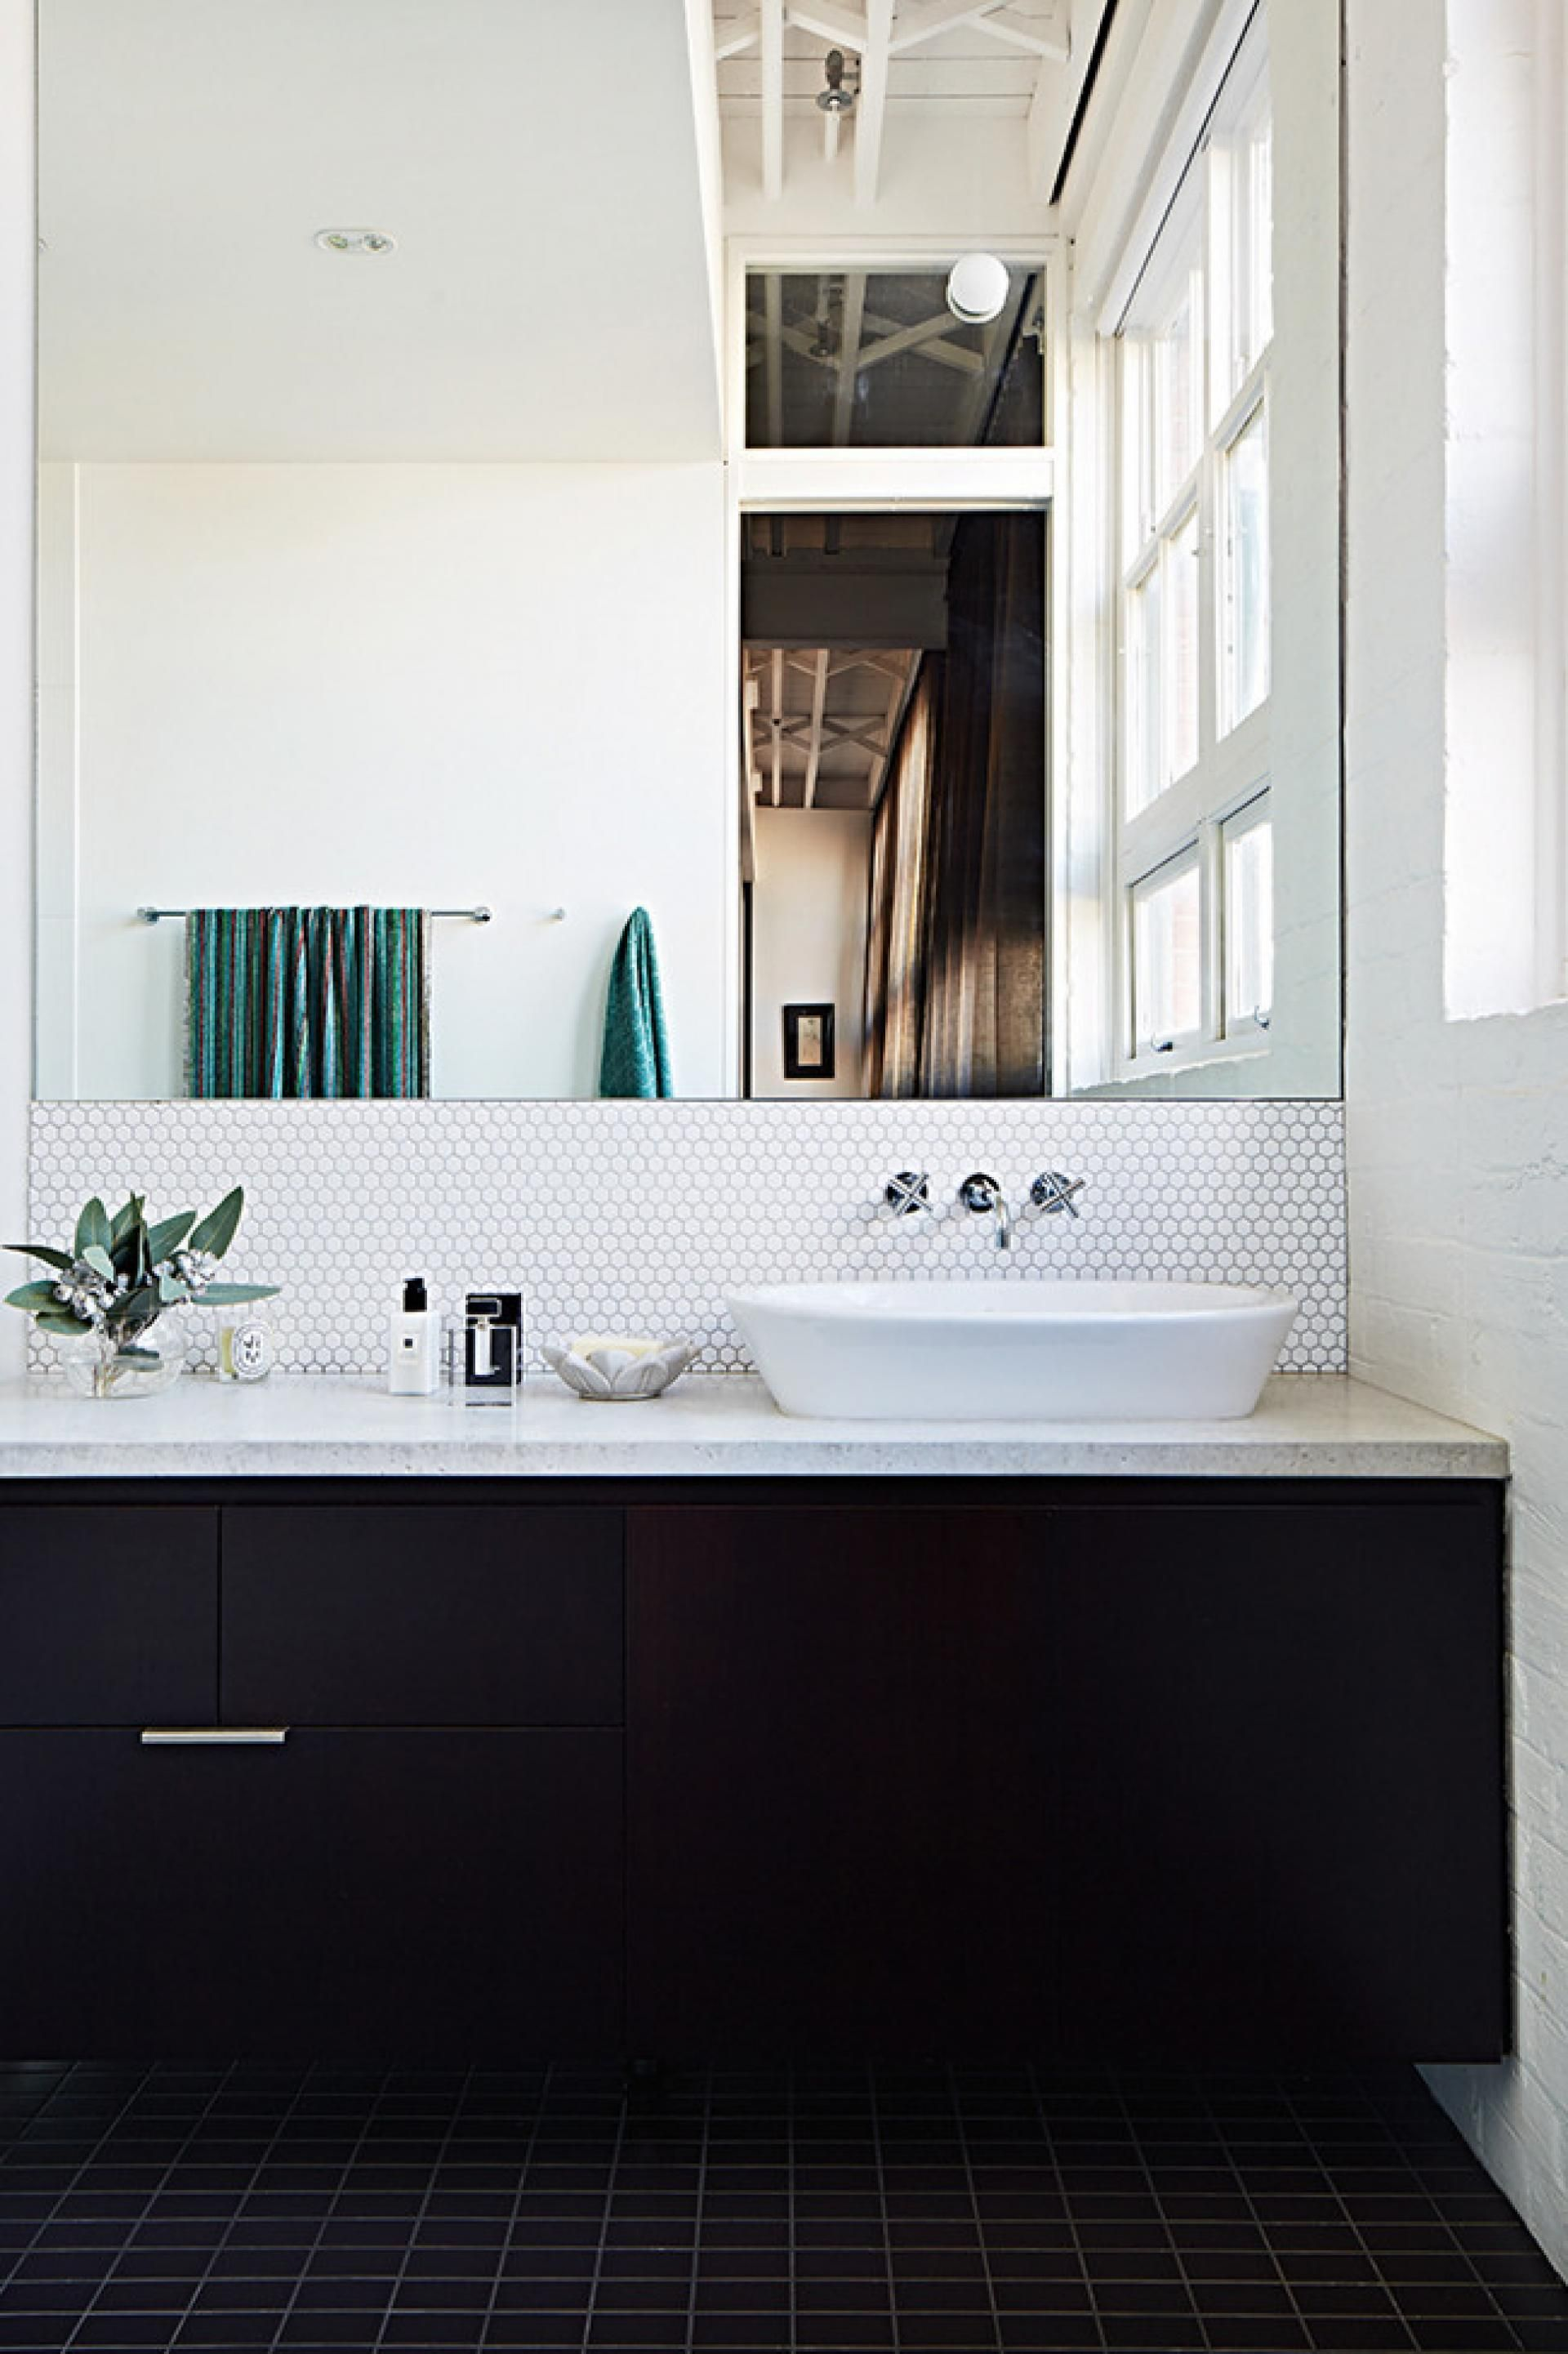 Top black and white bathrooms styling by jacqui moore